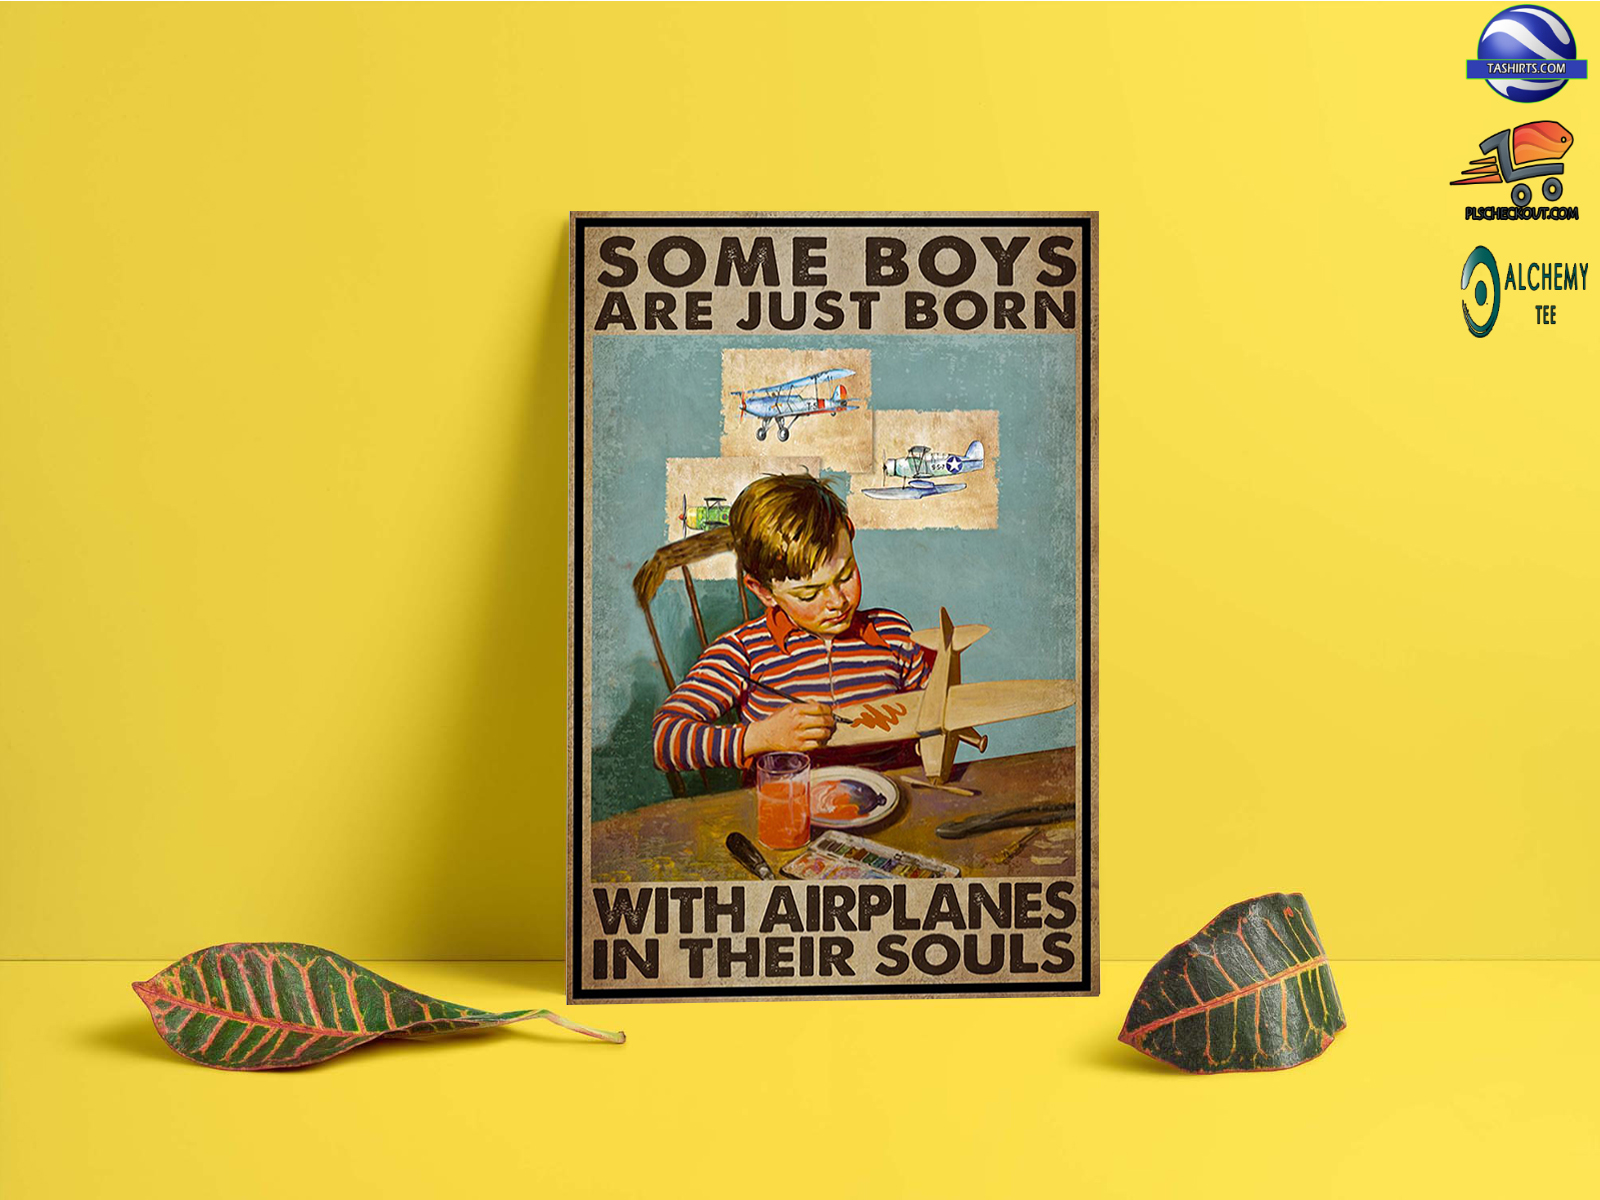 Some boys are just born with airplanes in their souls poster